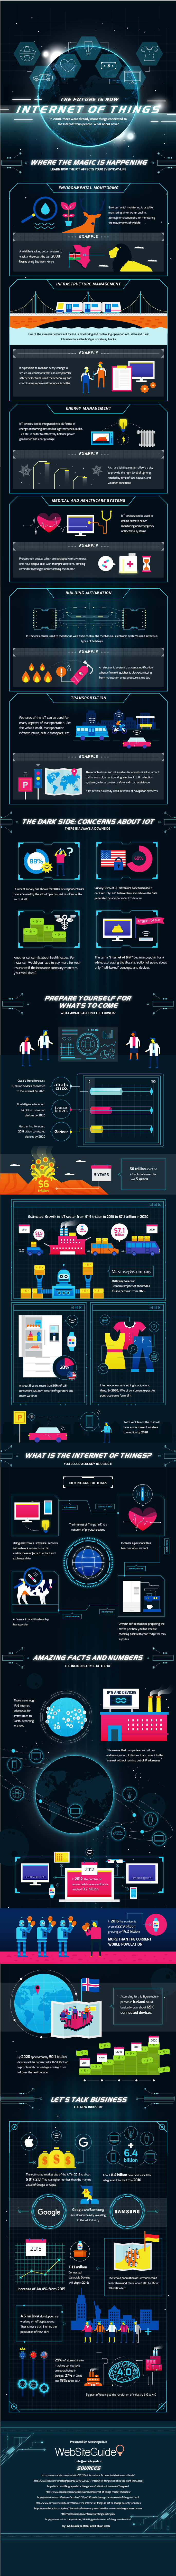 The Future is Now- Analyzing Internet of Things - Infographic